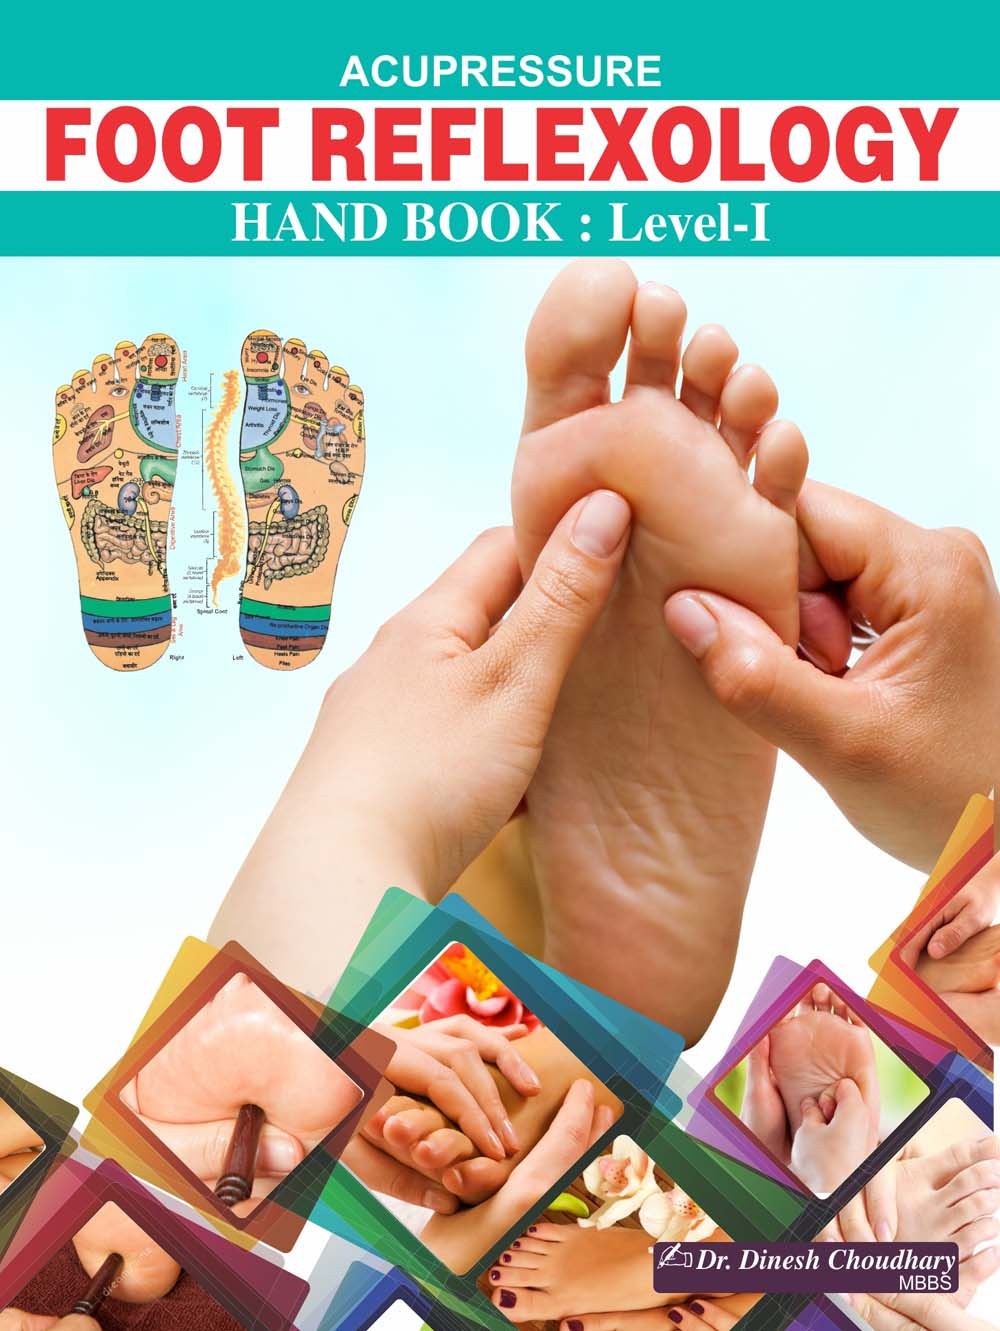 Acupressure Foot Reflexology - Dr. Dinesh  - 571